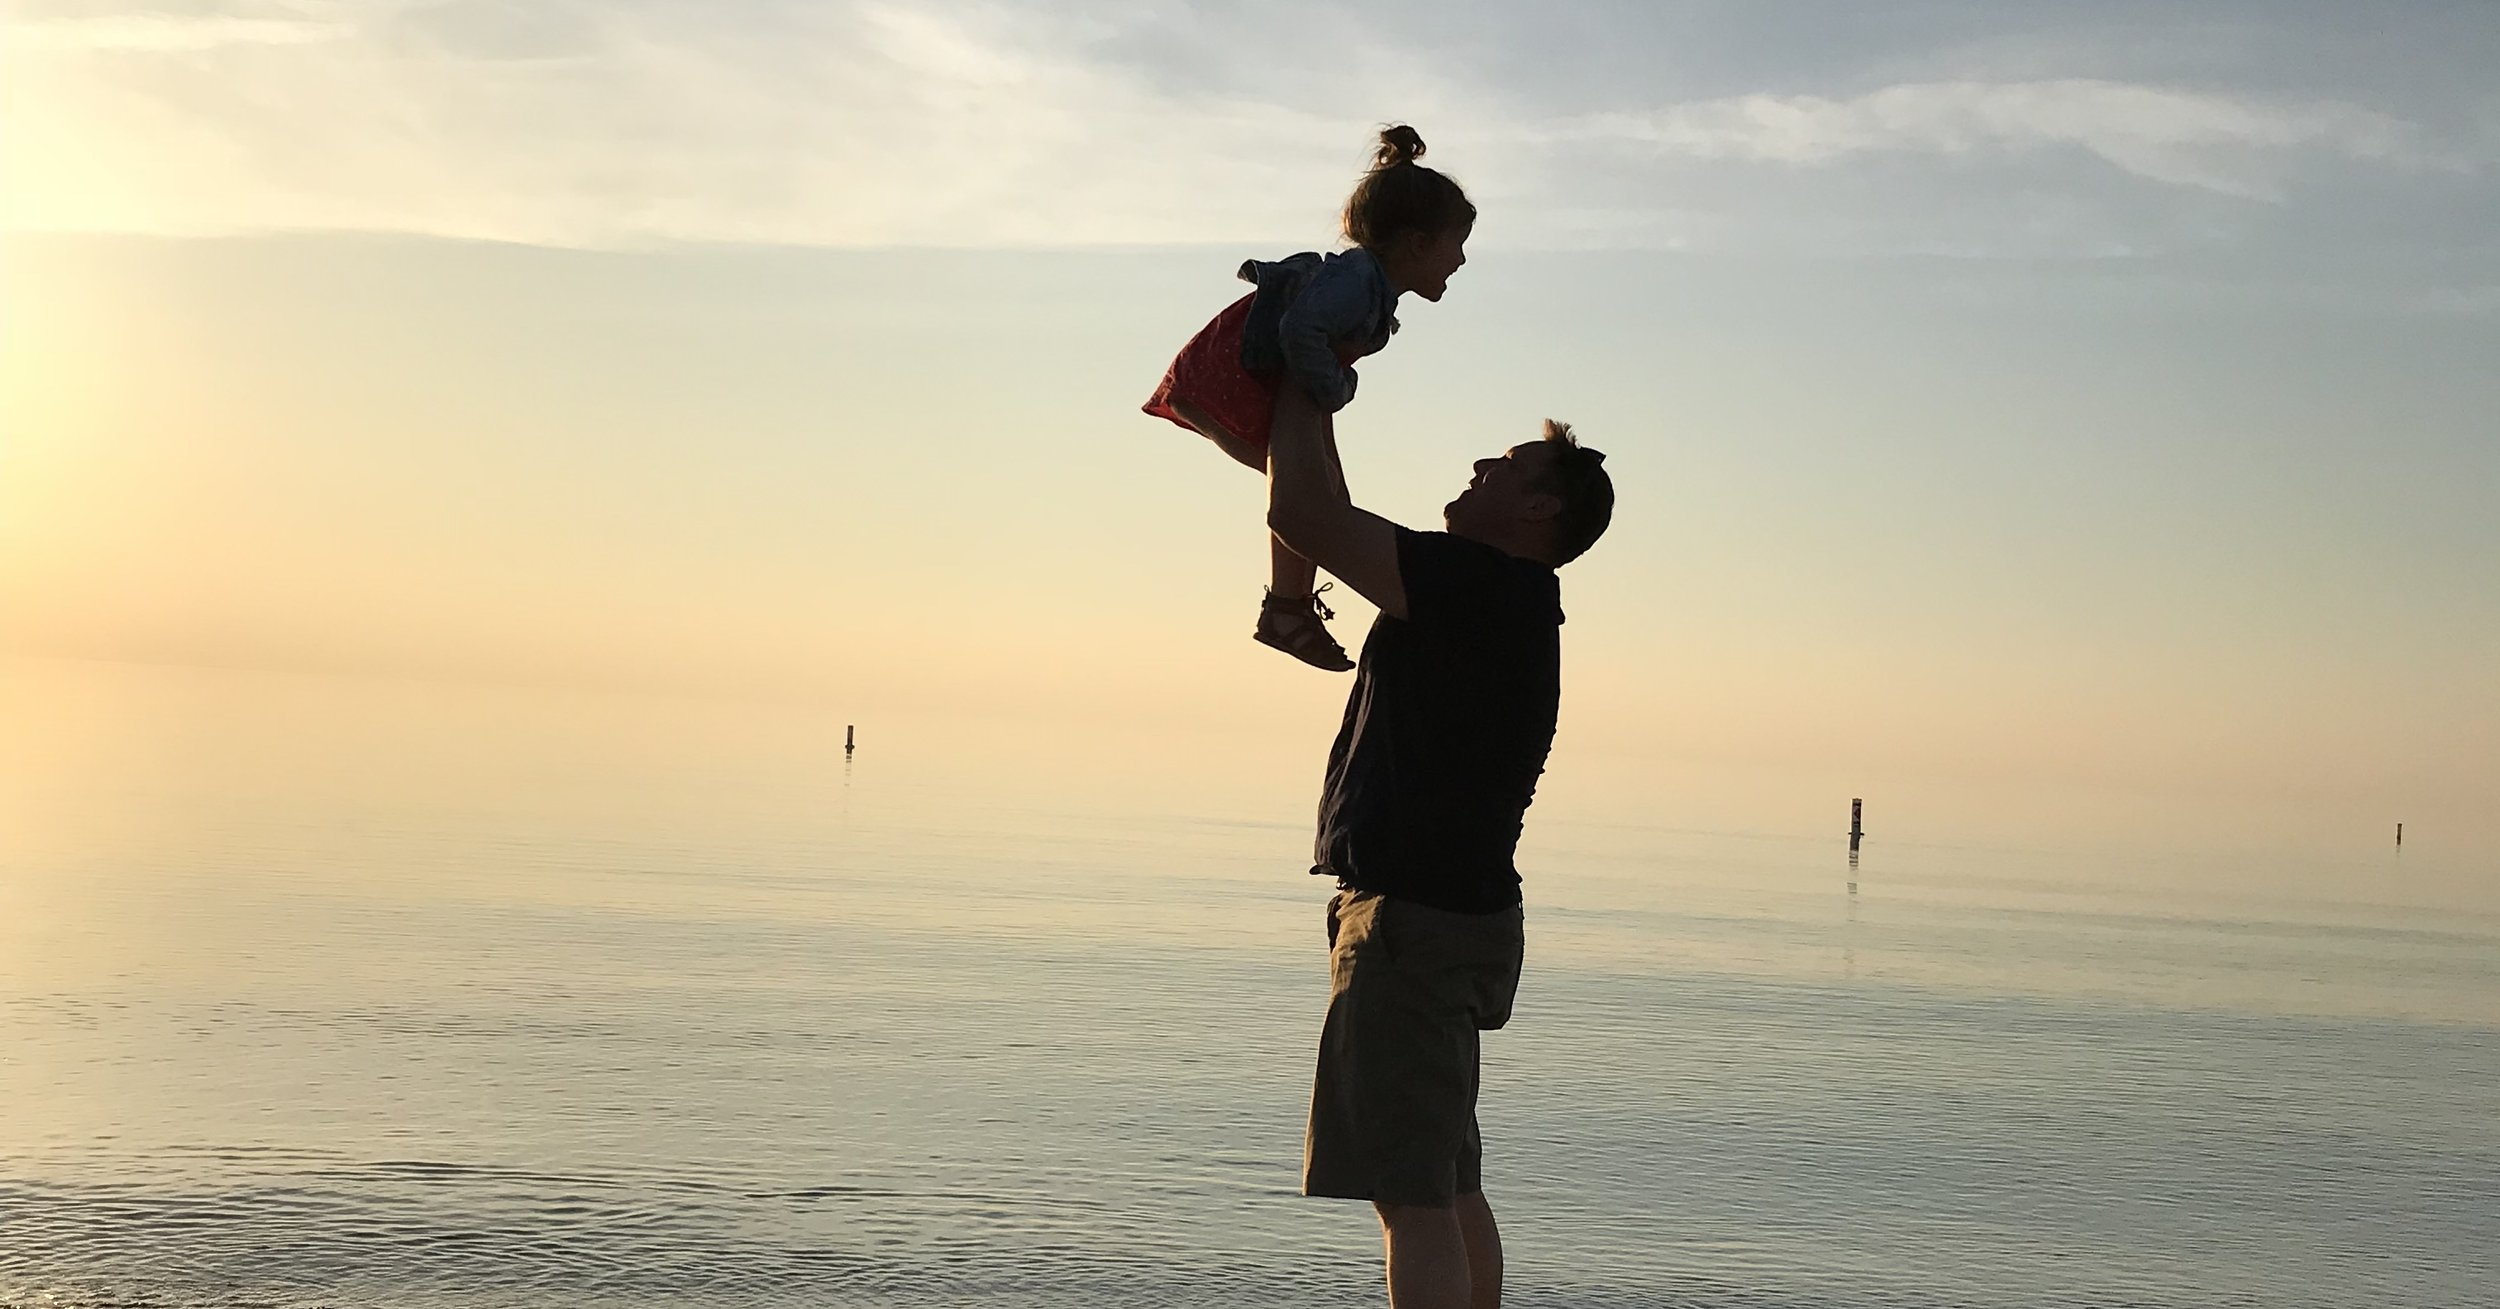 Why I don't feel bad going on trips without my stepchildren